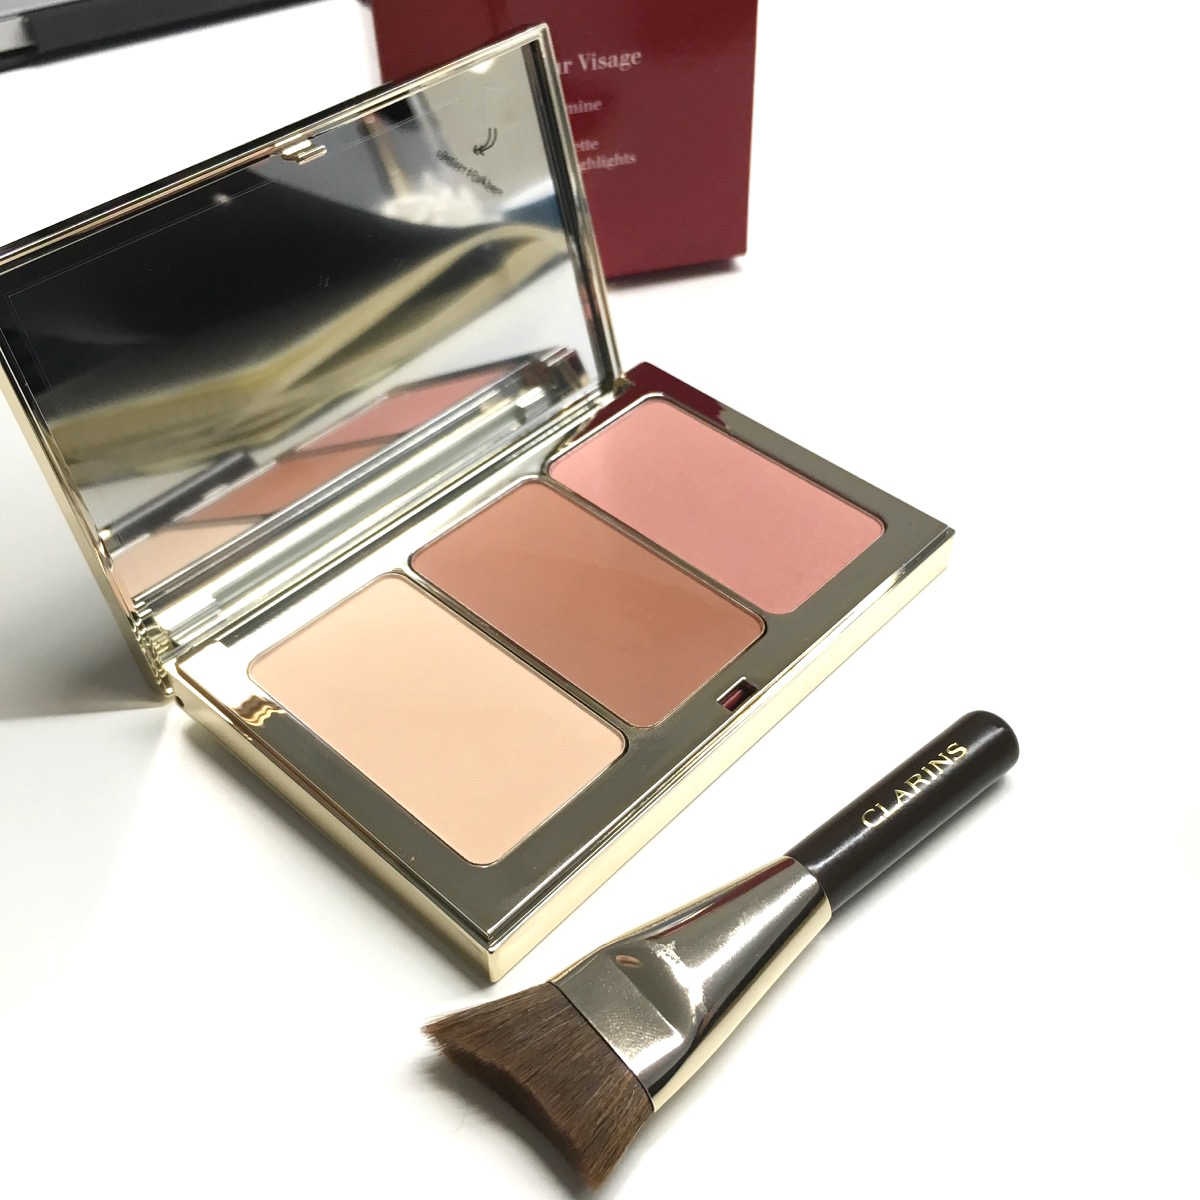 Clarins spring 2017 Contouring palette